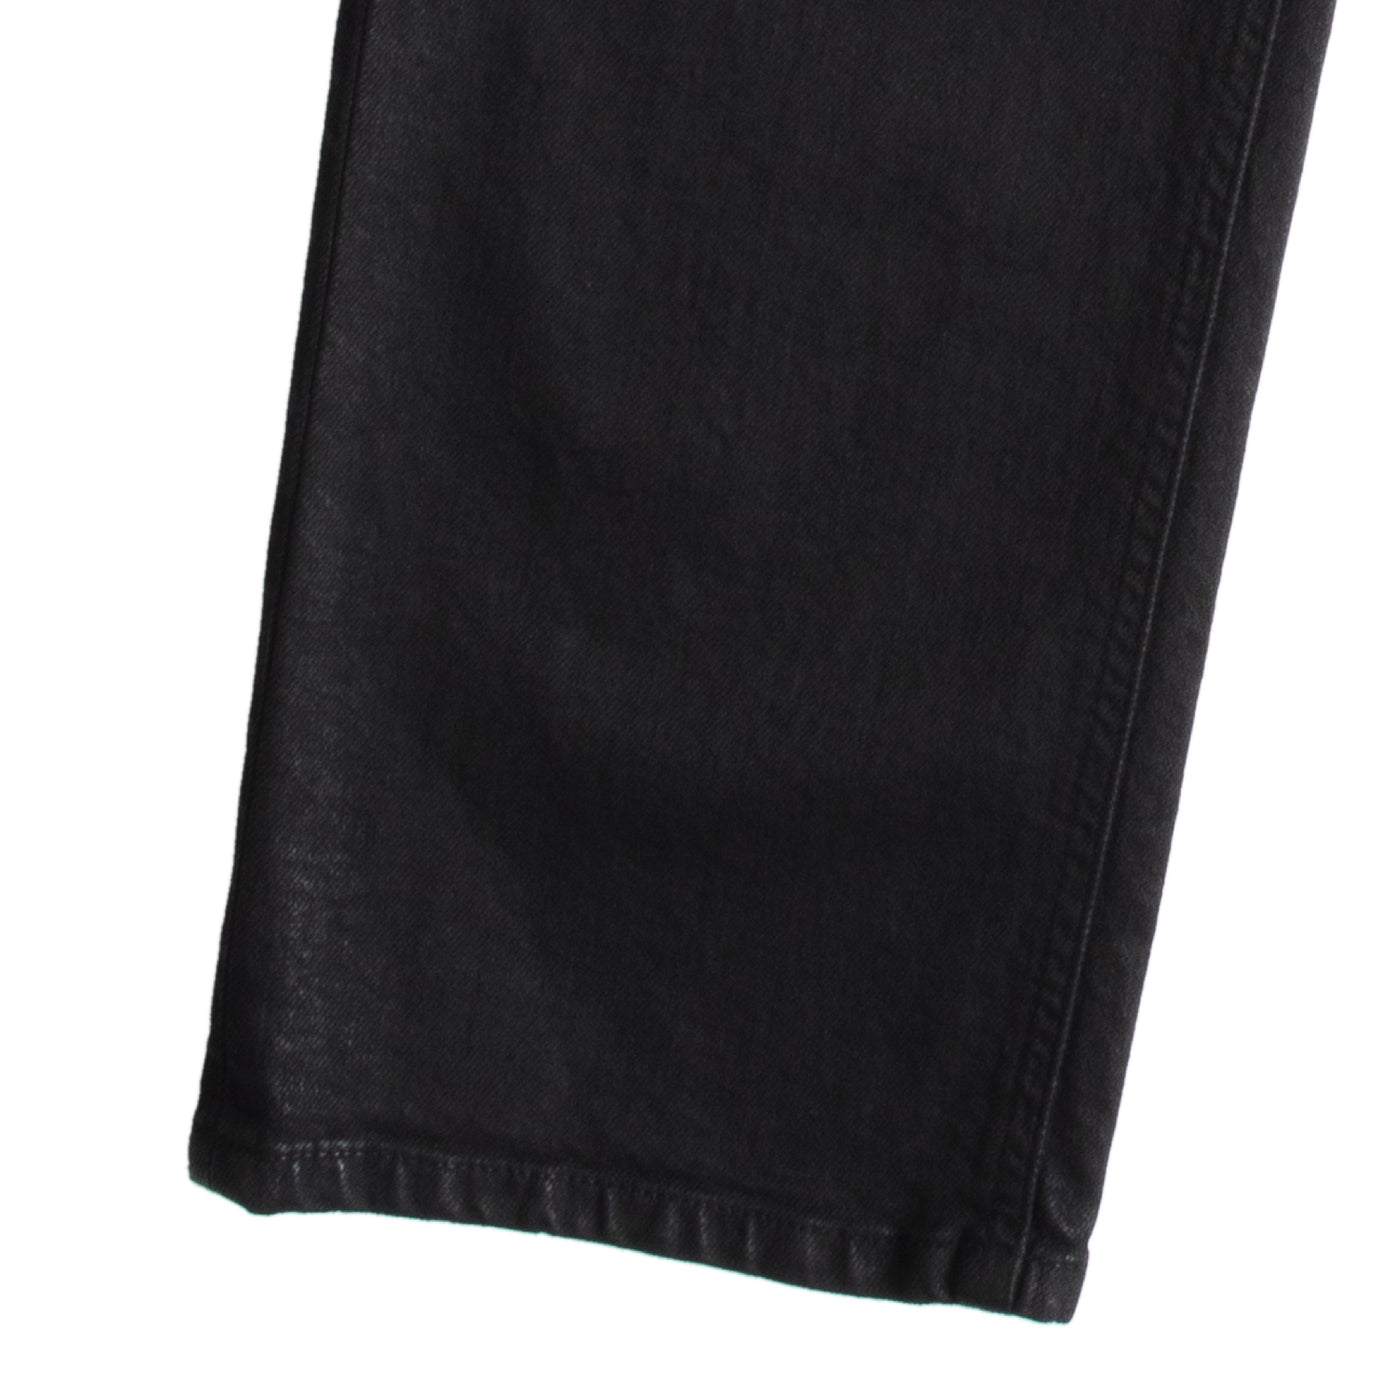 Load image into Gallery viewer, 1017 ALYX 9SM 6-POCKET JEANS BLACK